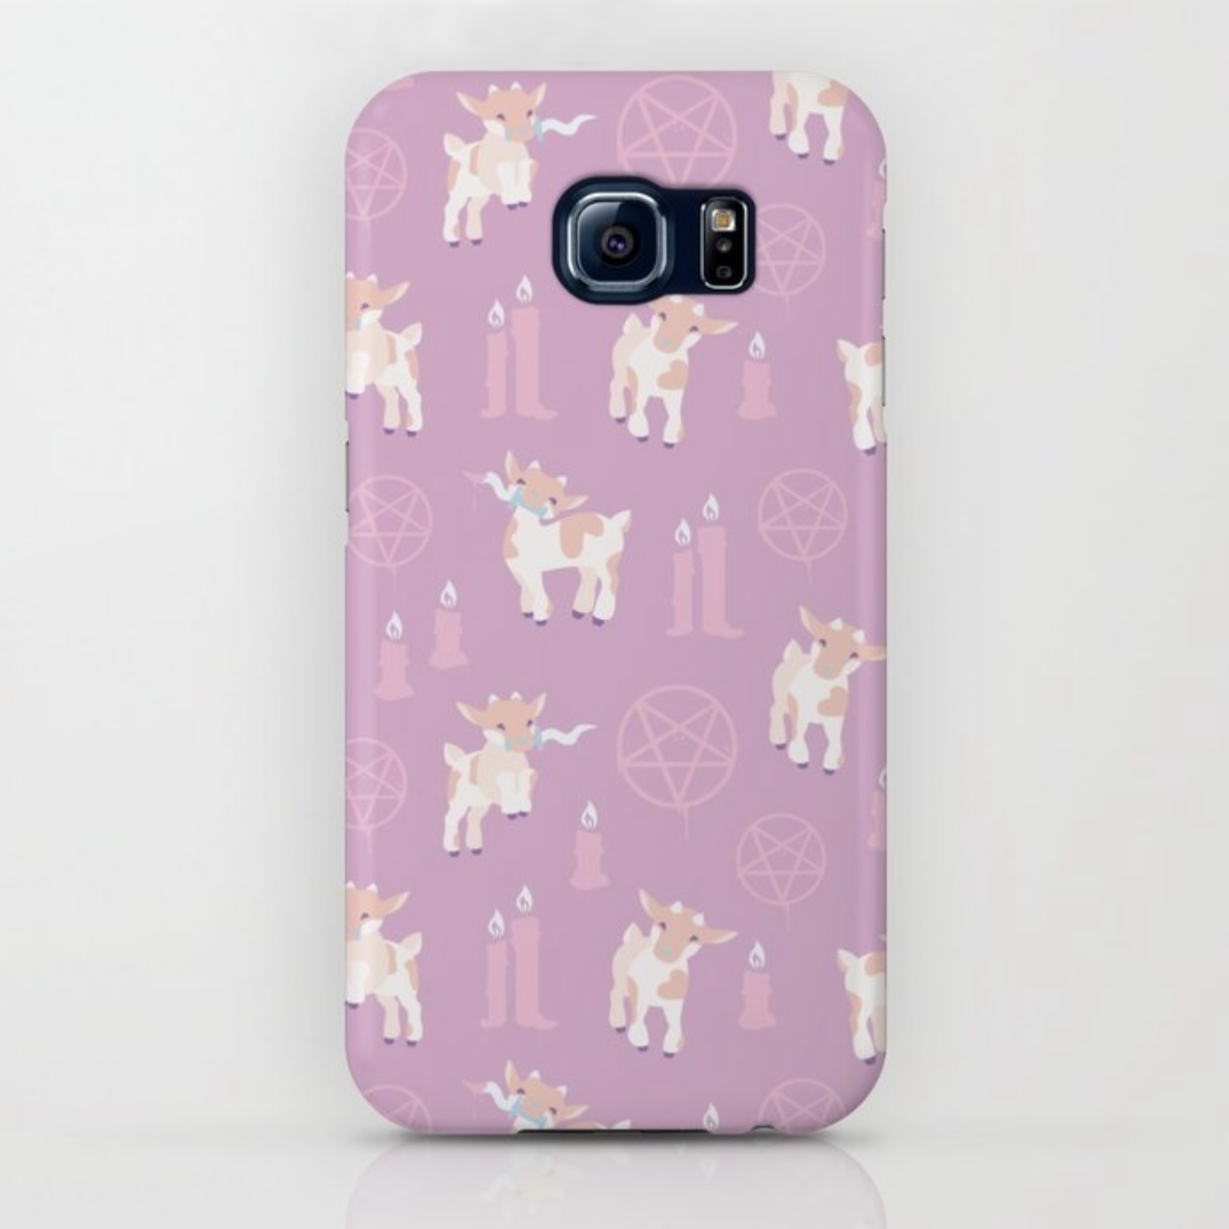 The kids are alright phone case from Society6